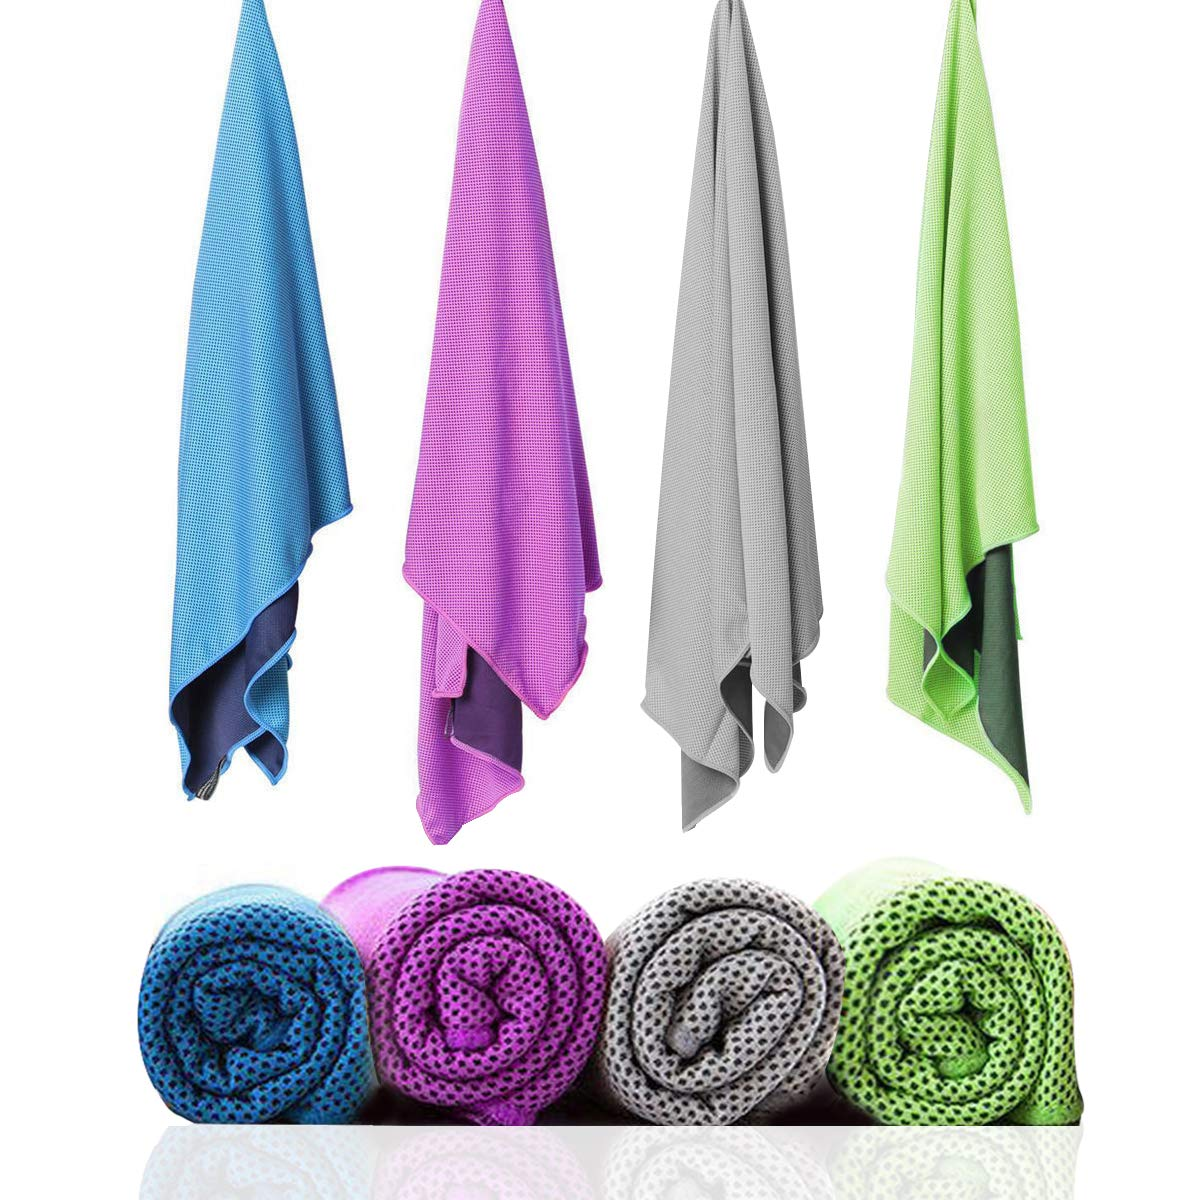 """SZELAM Cooling Towel, 4 Packs Ice Towel for Instant Cooling Relief, 40""""x12"""" Microfiber Breathable Stay Cool Towel for Yoga, Golf, Camping & More, Individually Wrapped with Pouch and Carabiner Clips"""